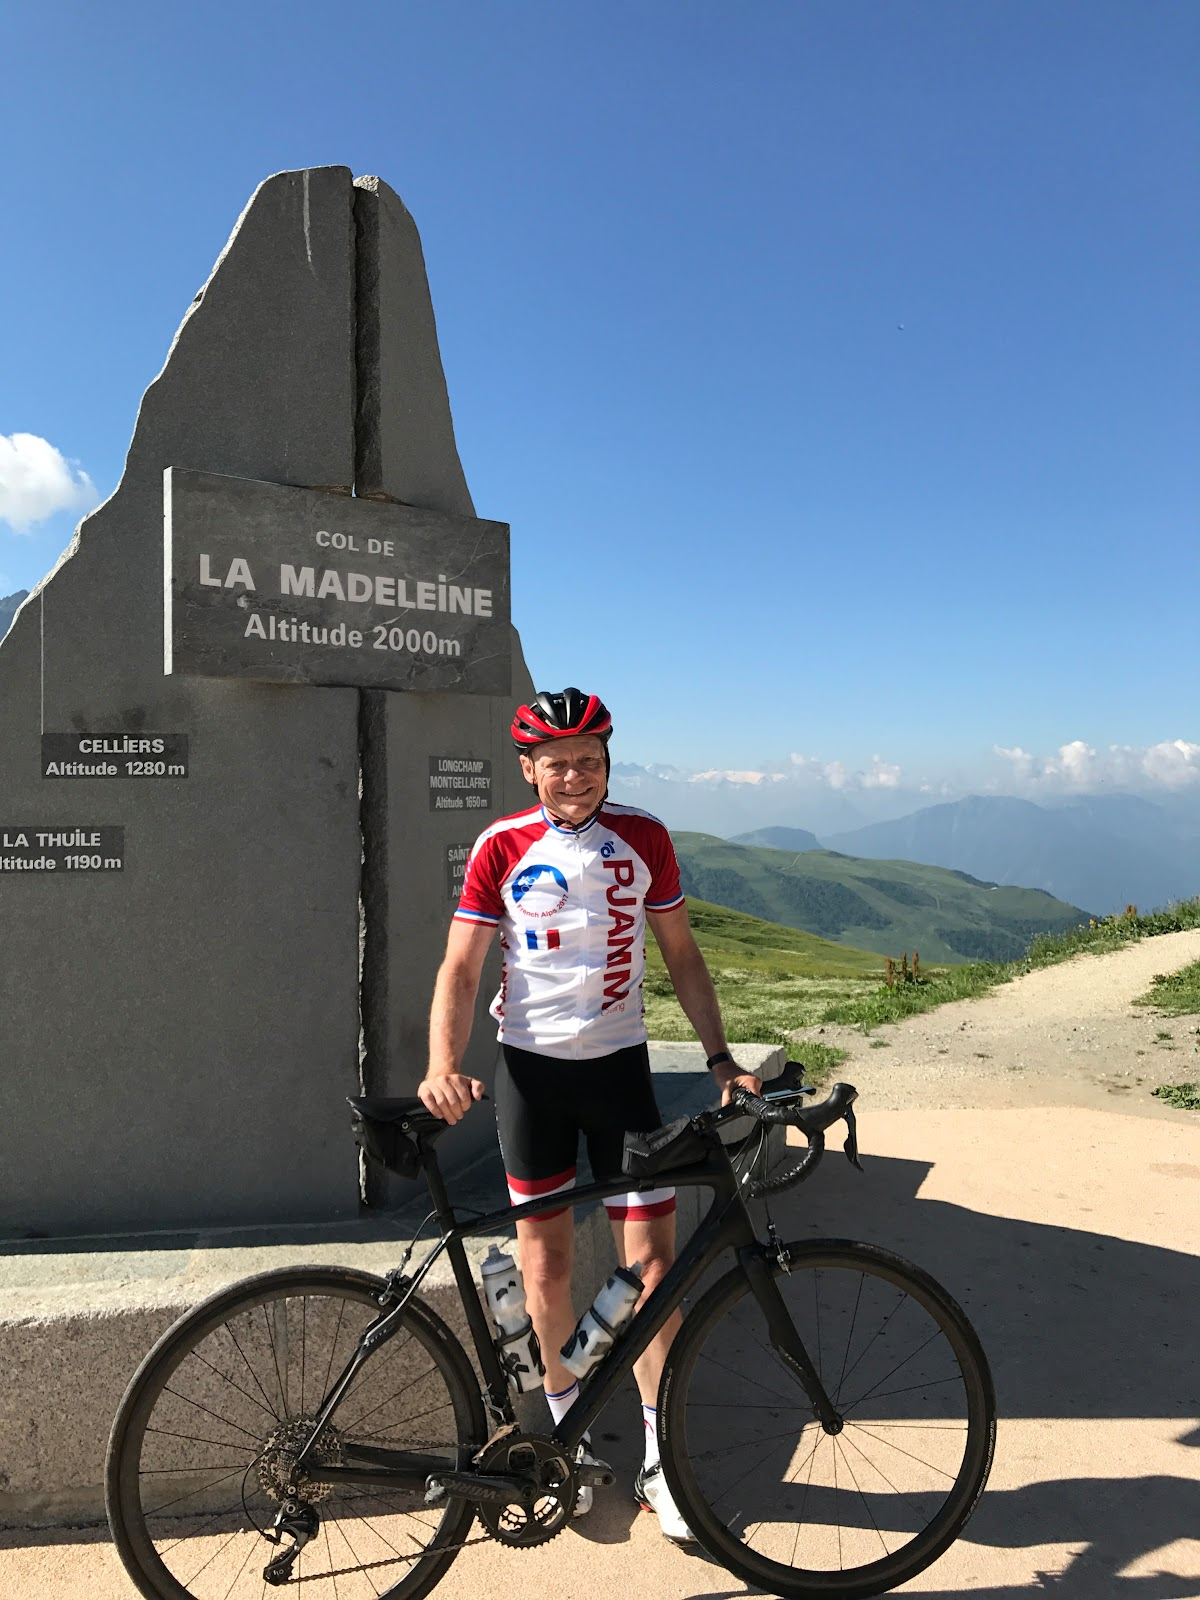 Cycling the greatest climbs - Col de Madeleine from La Chambre  - cyclists with bike at col monument